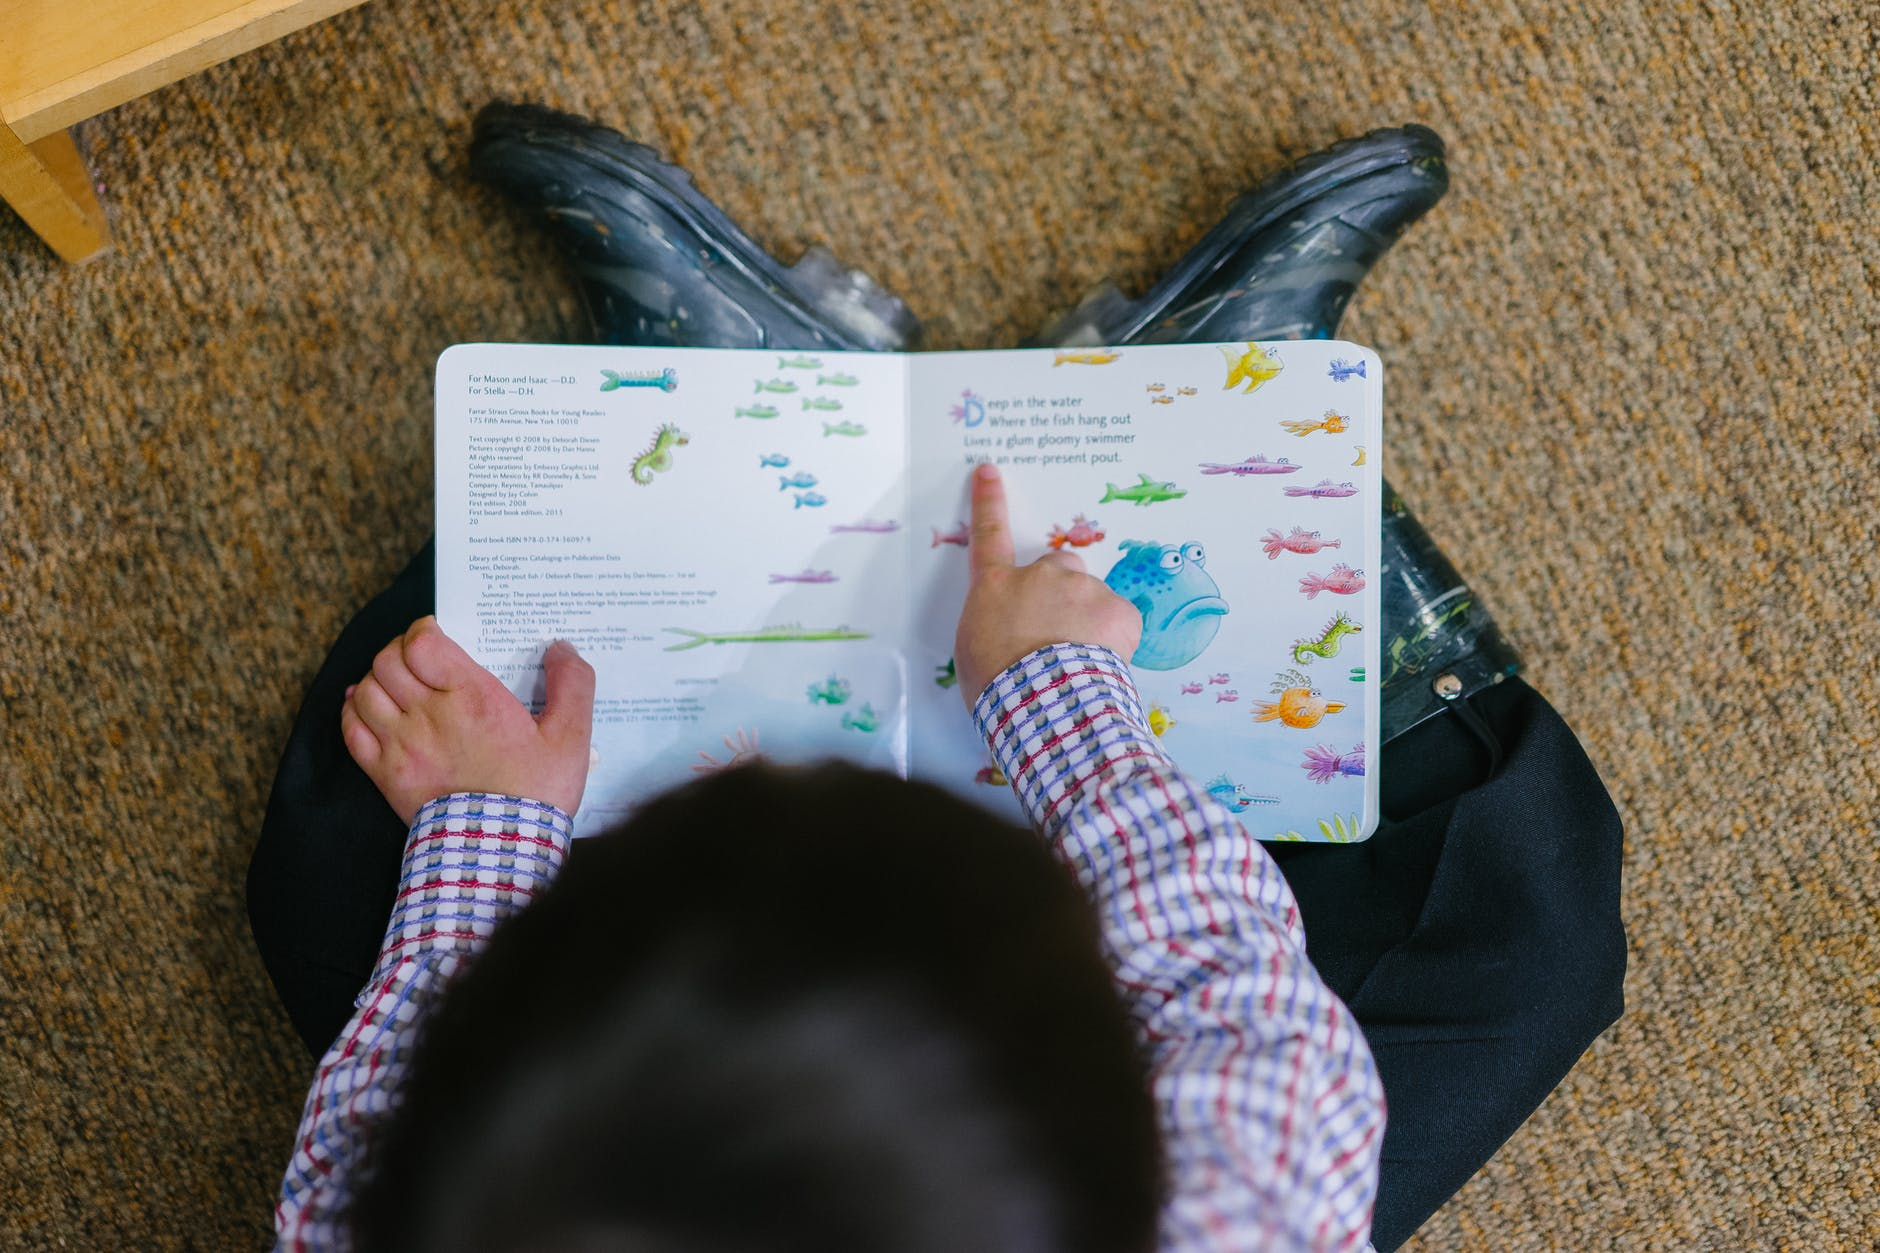 Challenging Behavior and Exclusionary Discipline in Early Childhood Education